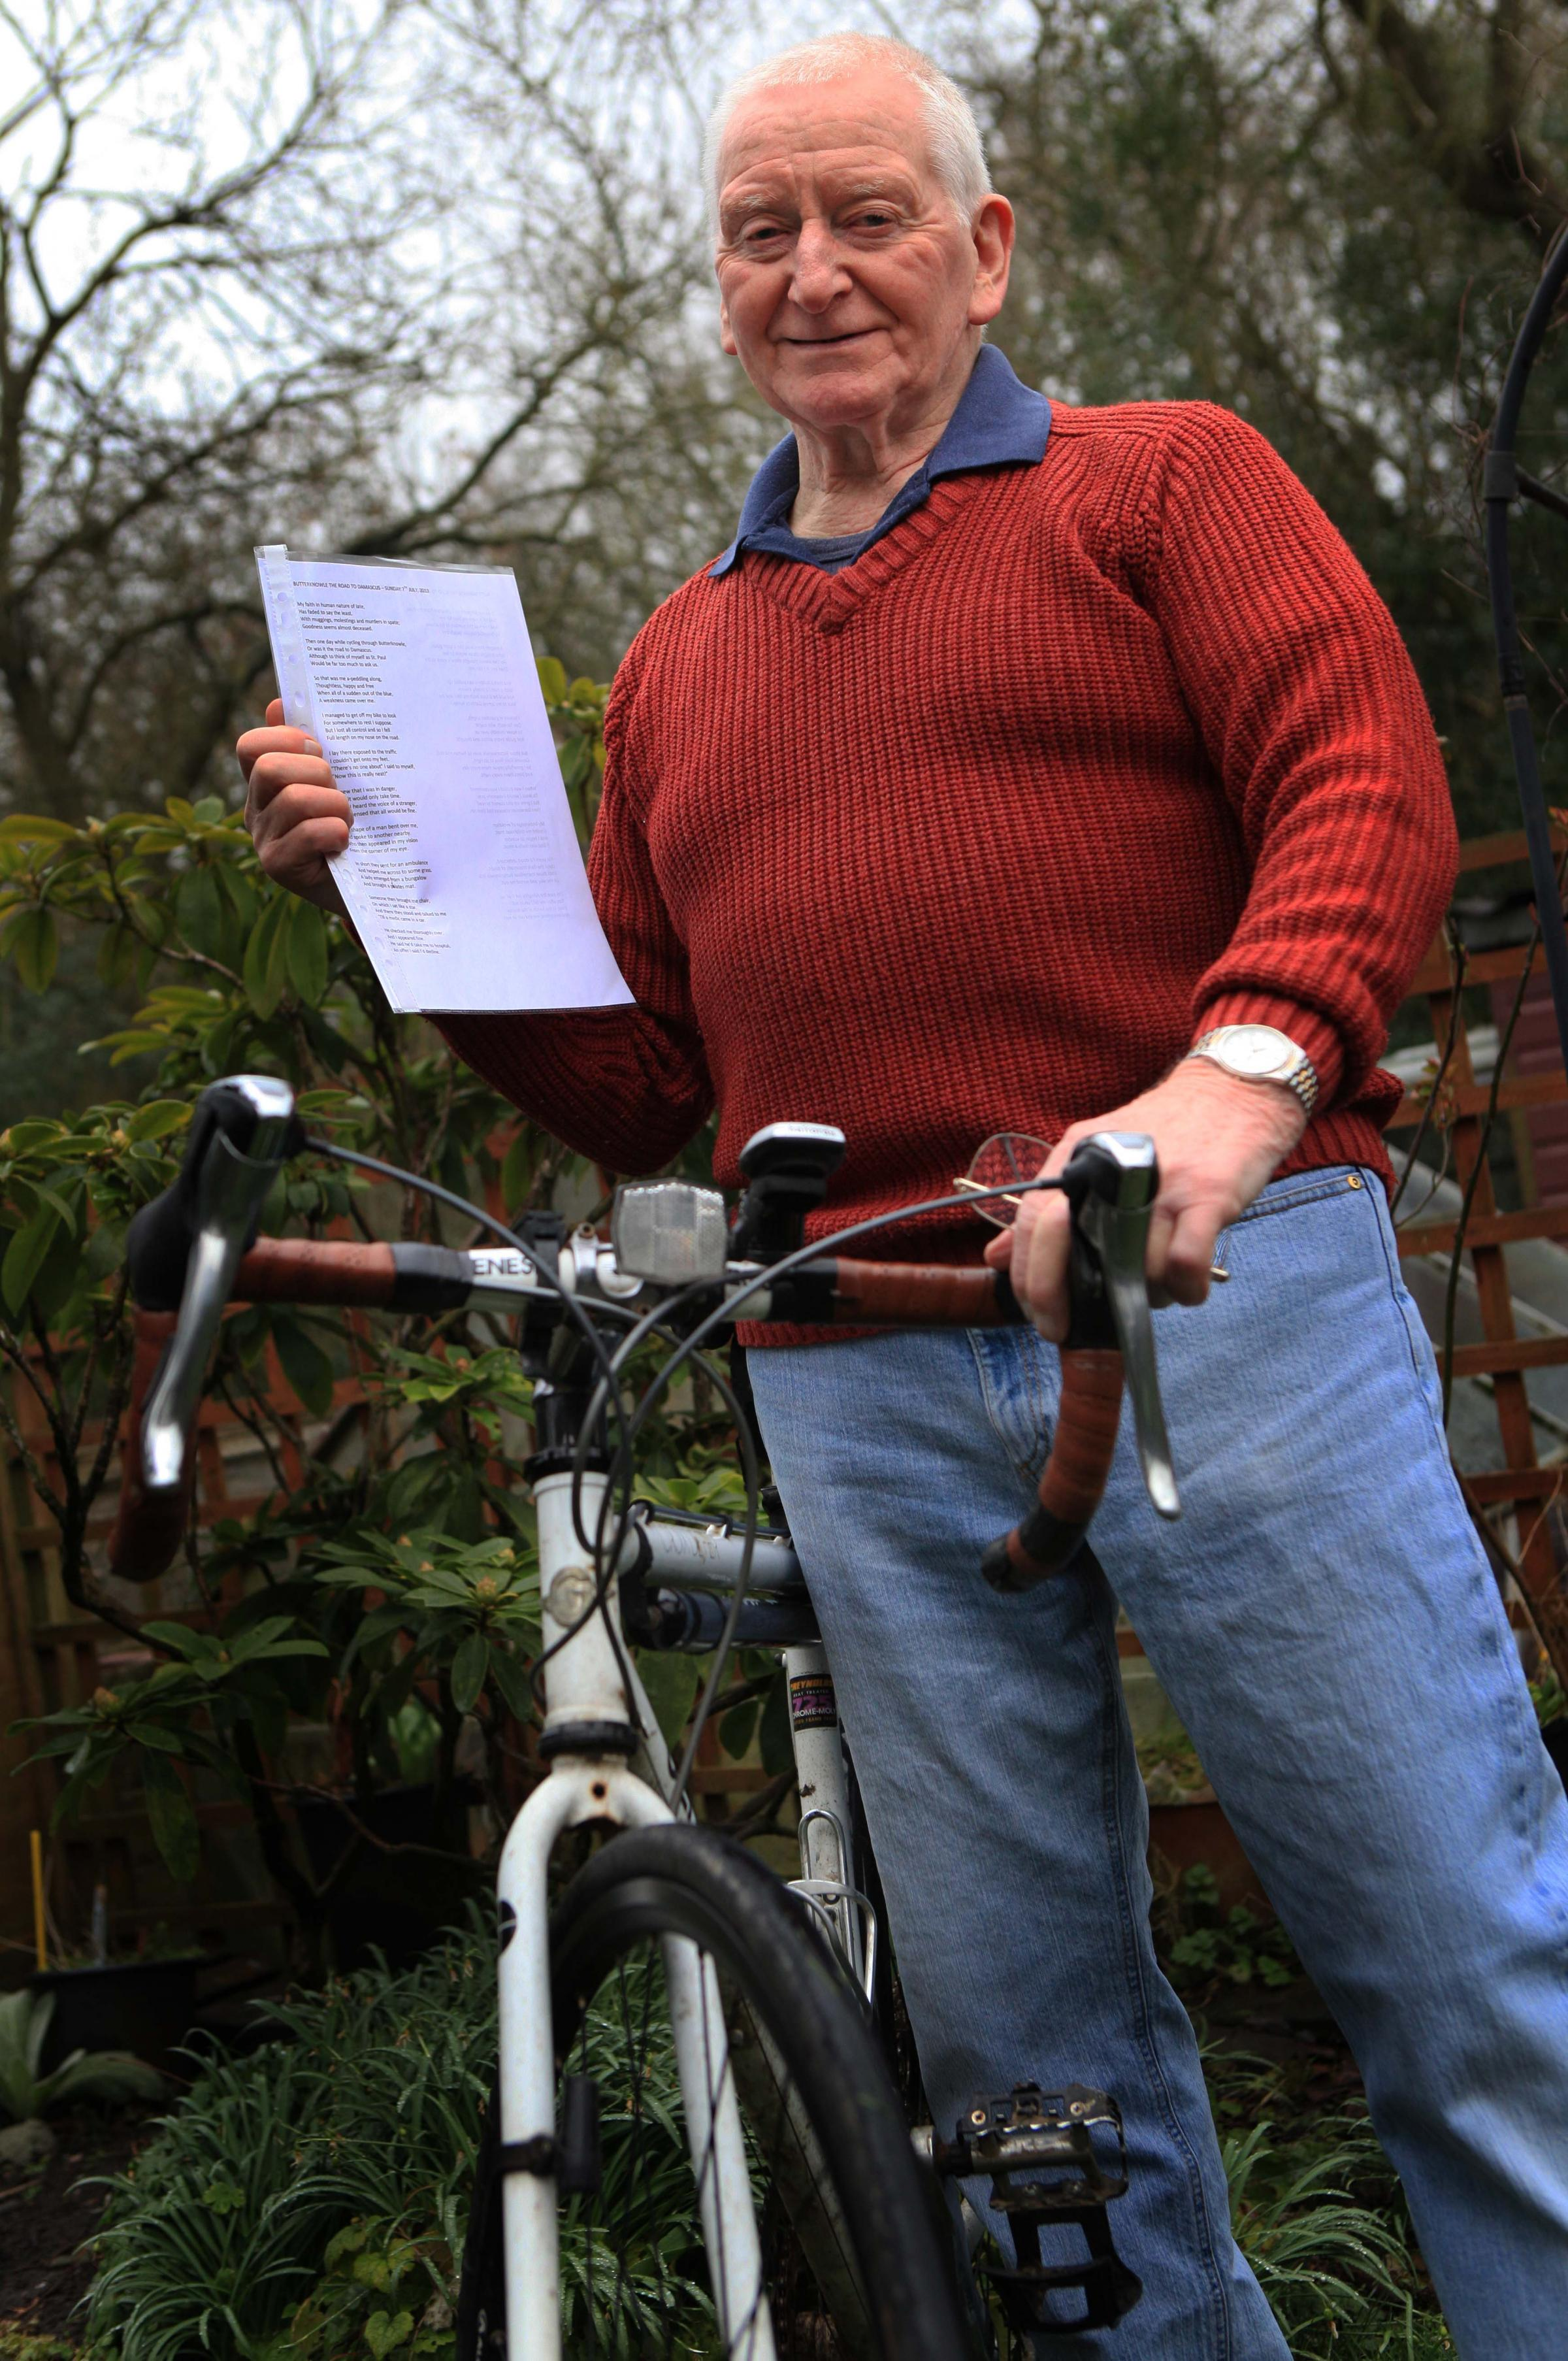 Cyclist Alan Thompson has written a poem to thank the strangers who helped him after an accident last summer